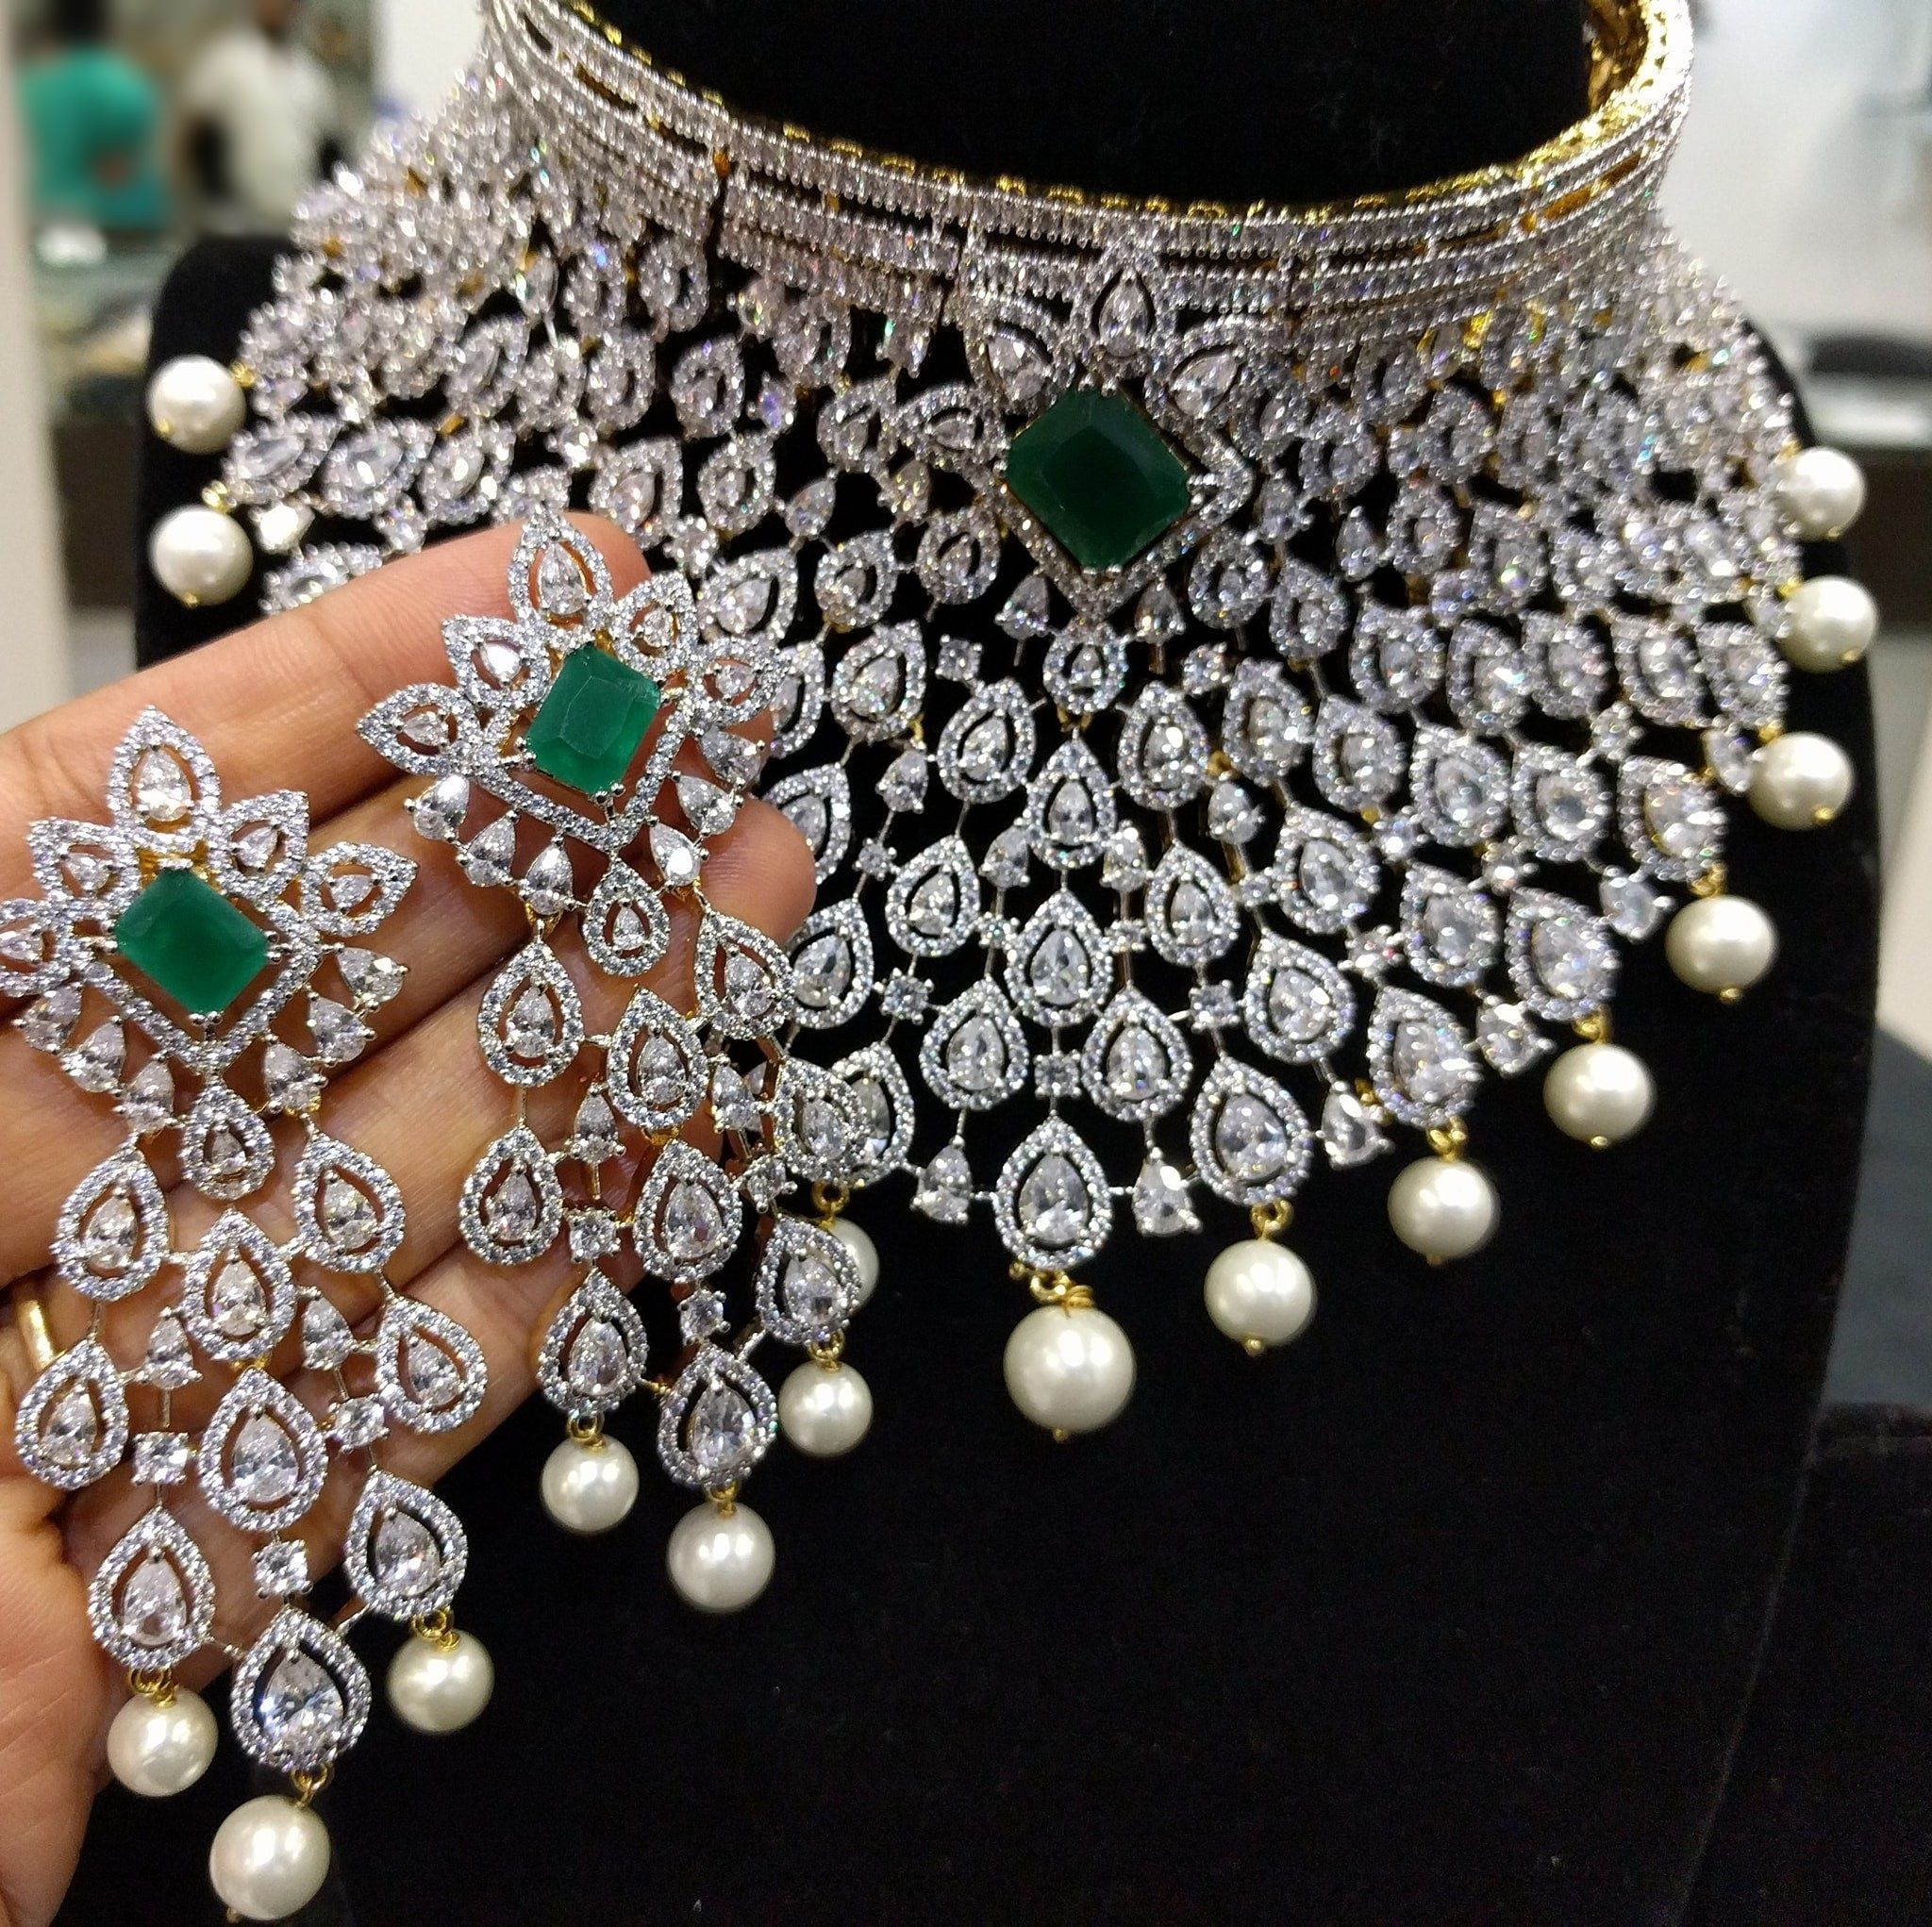 Jewelry Diamond Indian Bridal Jewellery Set The Grand Bridal Choker Necklace With Earrings I Bridal Diamond Jewellery Indian Bridal Jewelry Sets Bridal Jewelry